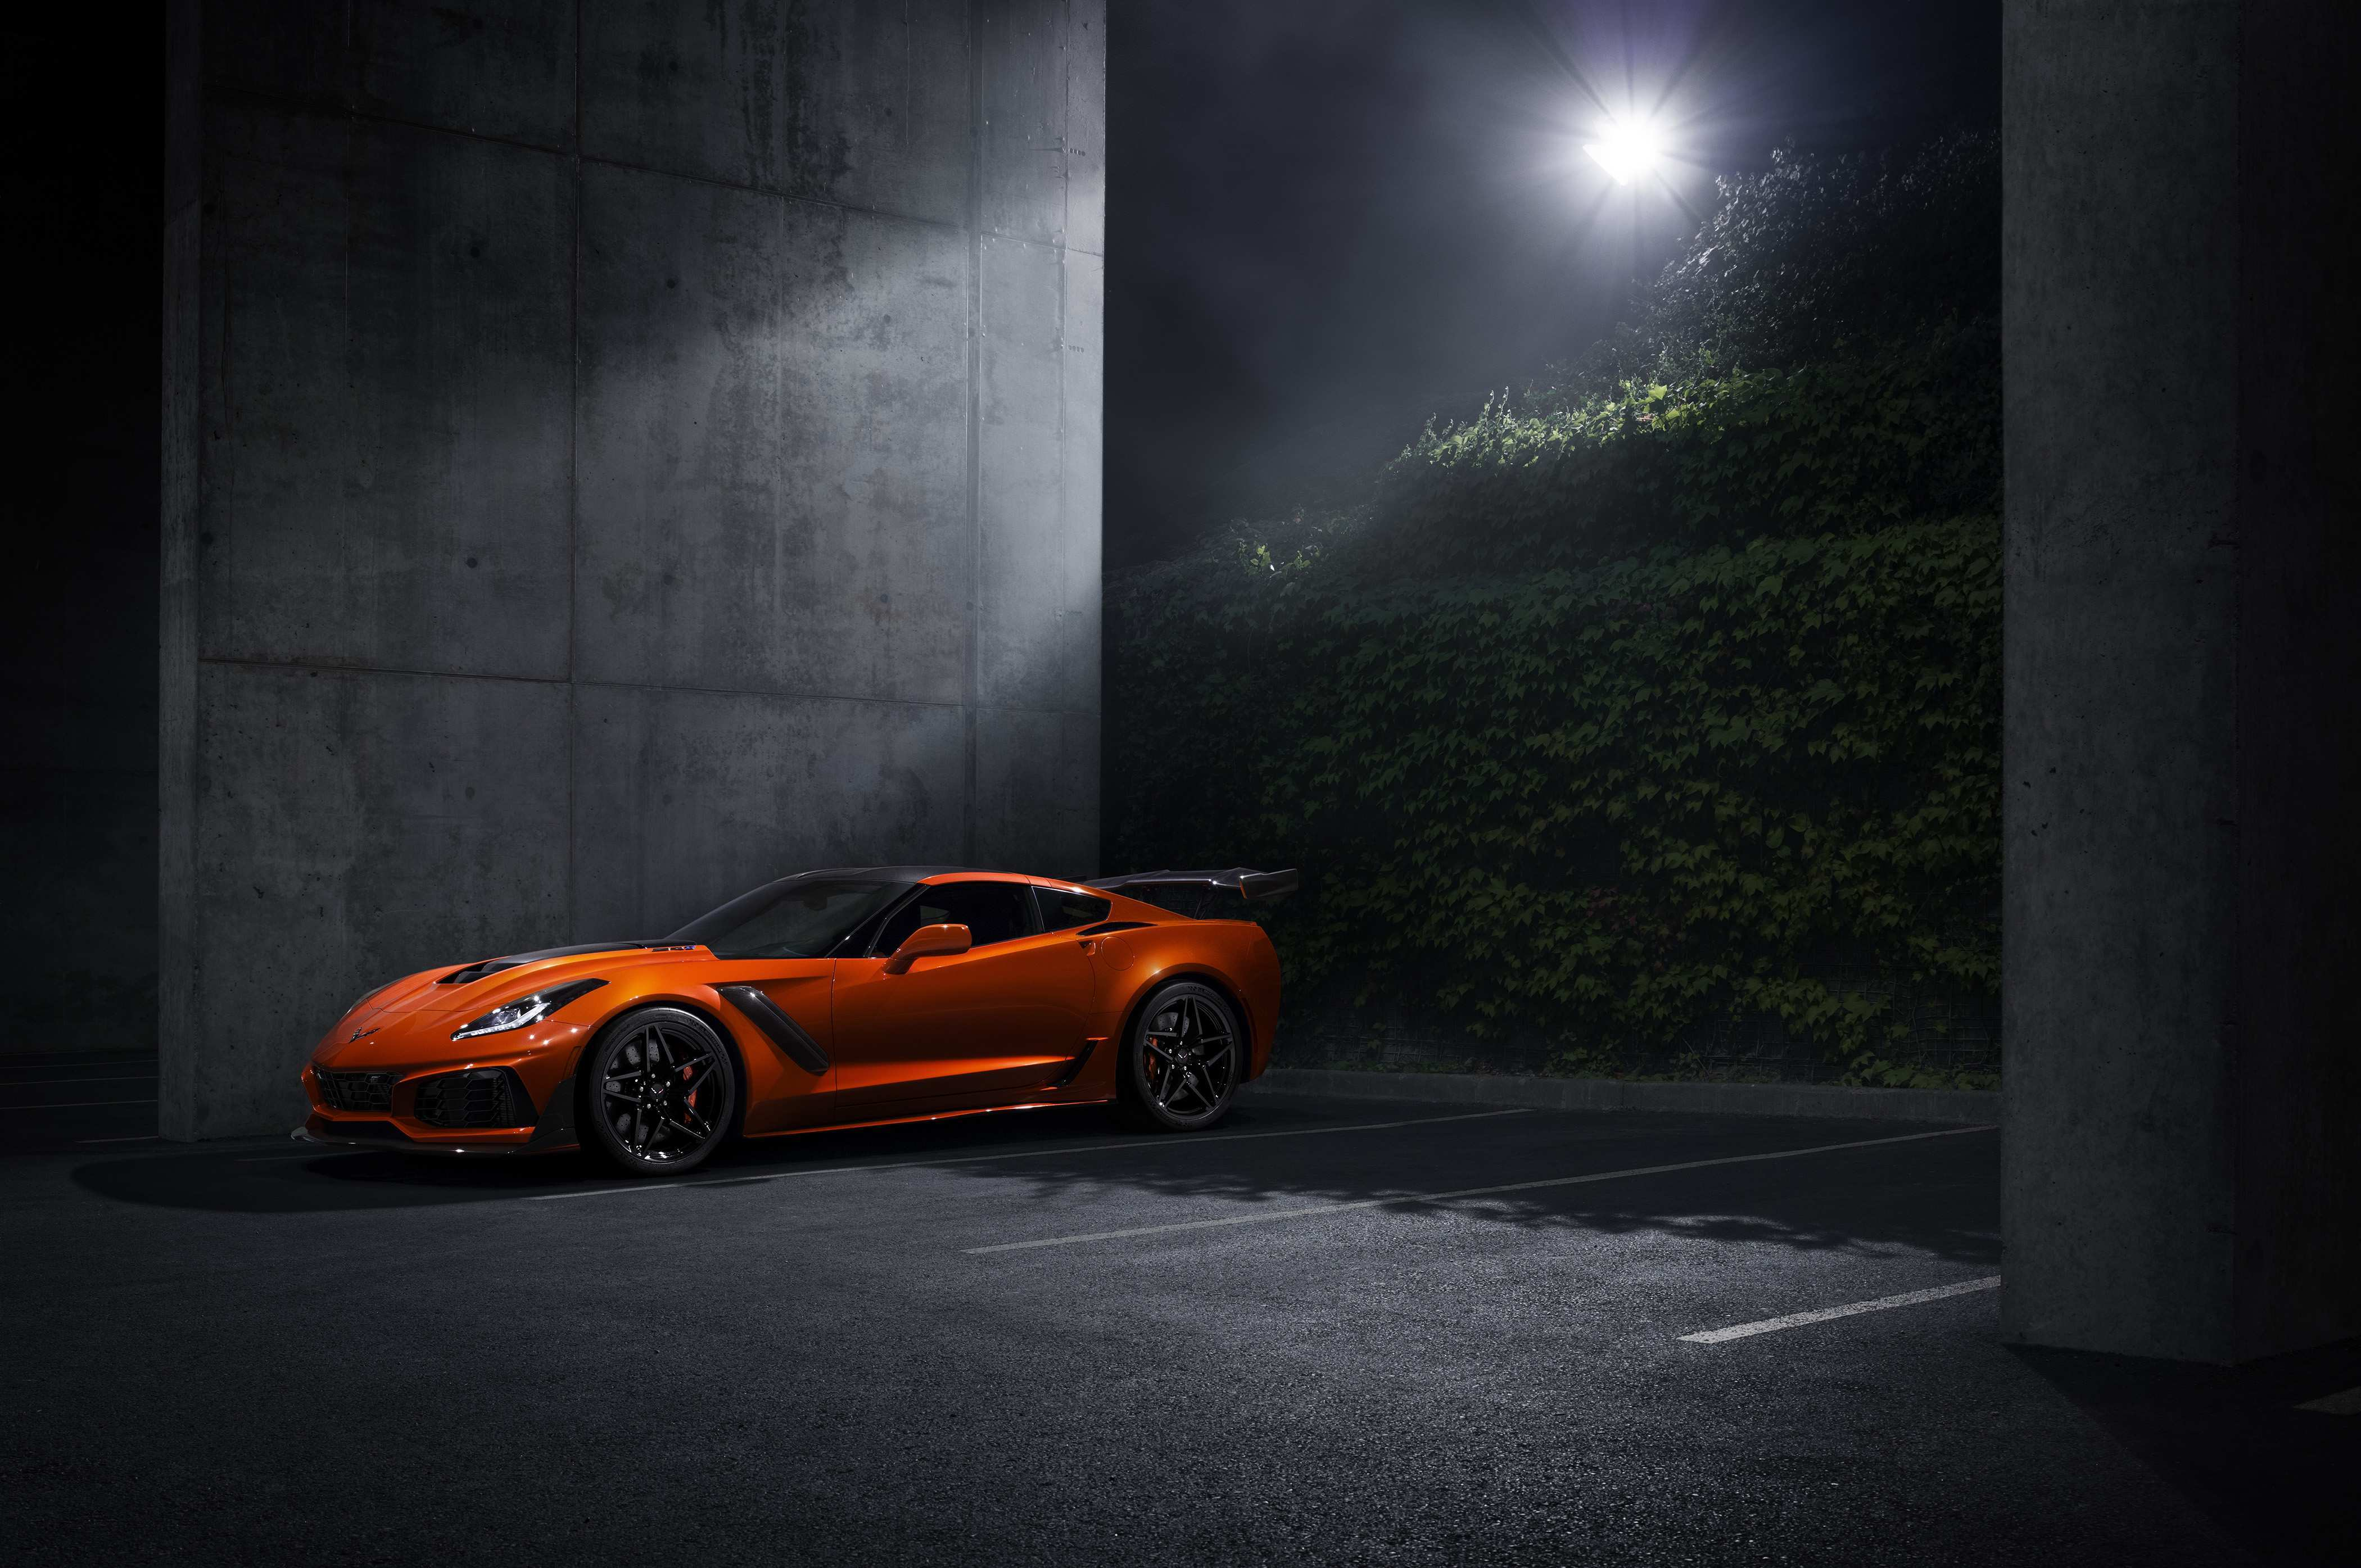 54 The Best 2019 Chevrolet Corvette Zr1 Is Gms Most Powerful Car Ever Price And Release Date